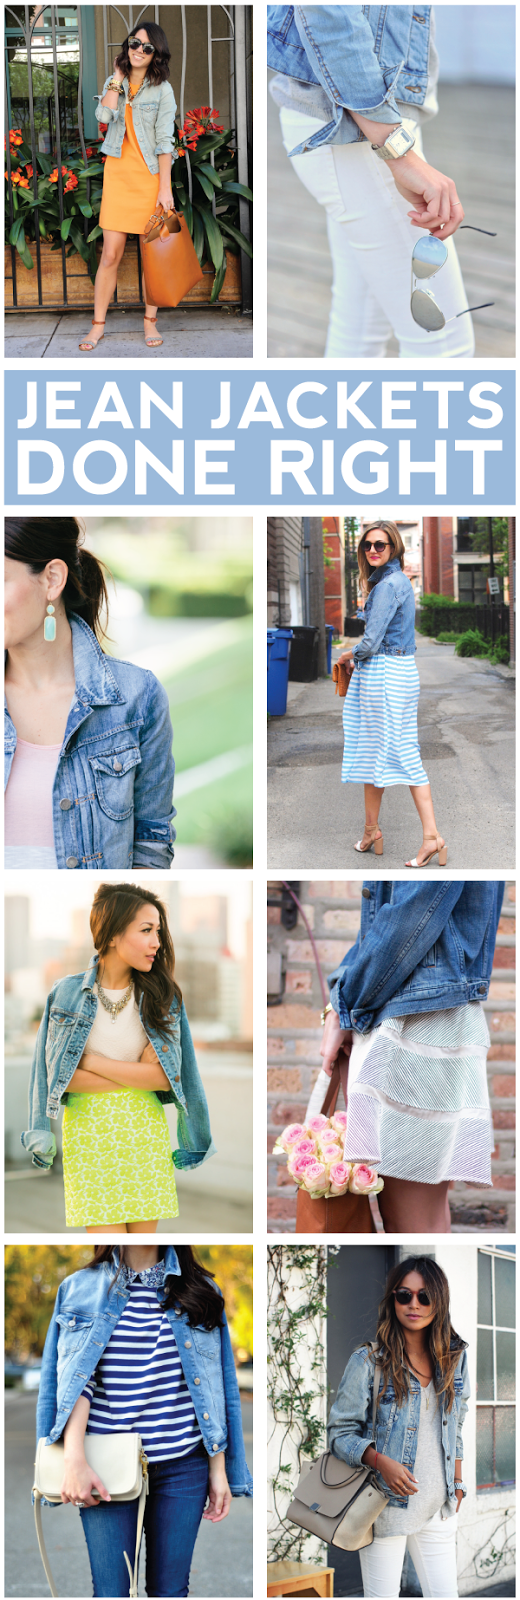 jean jackets done right.